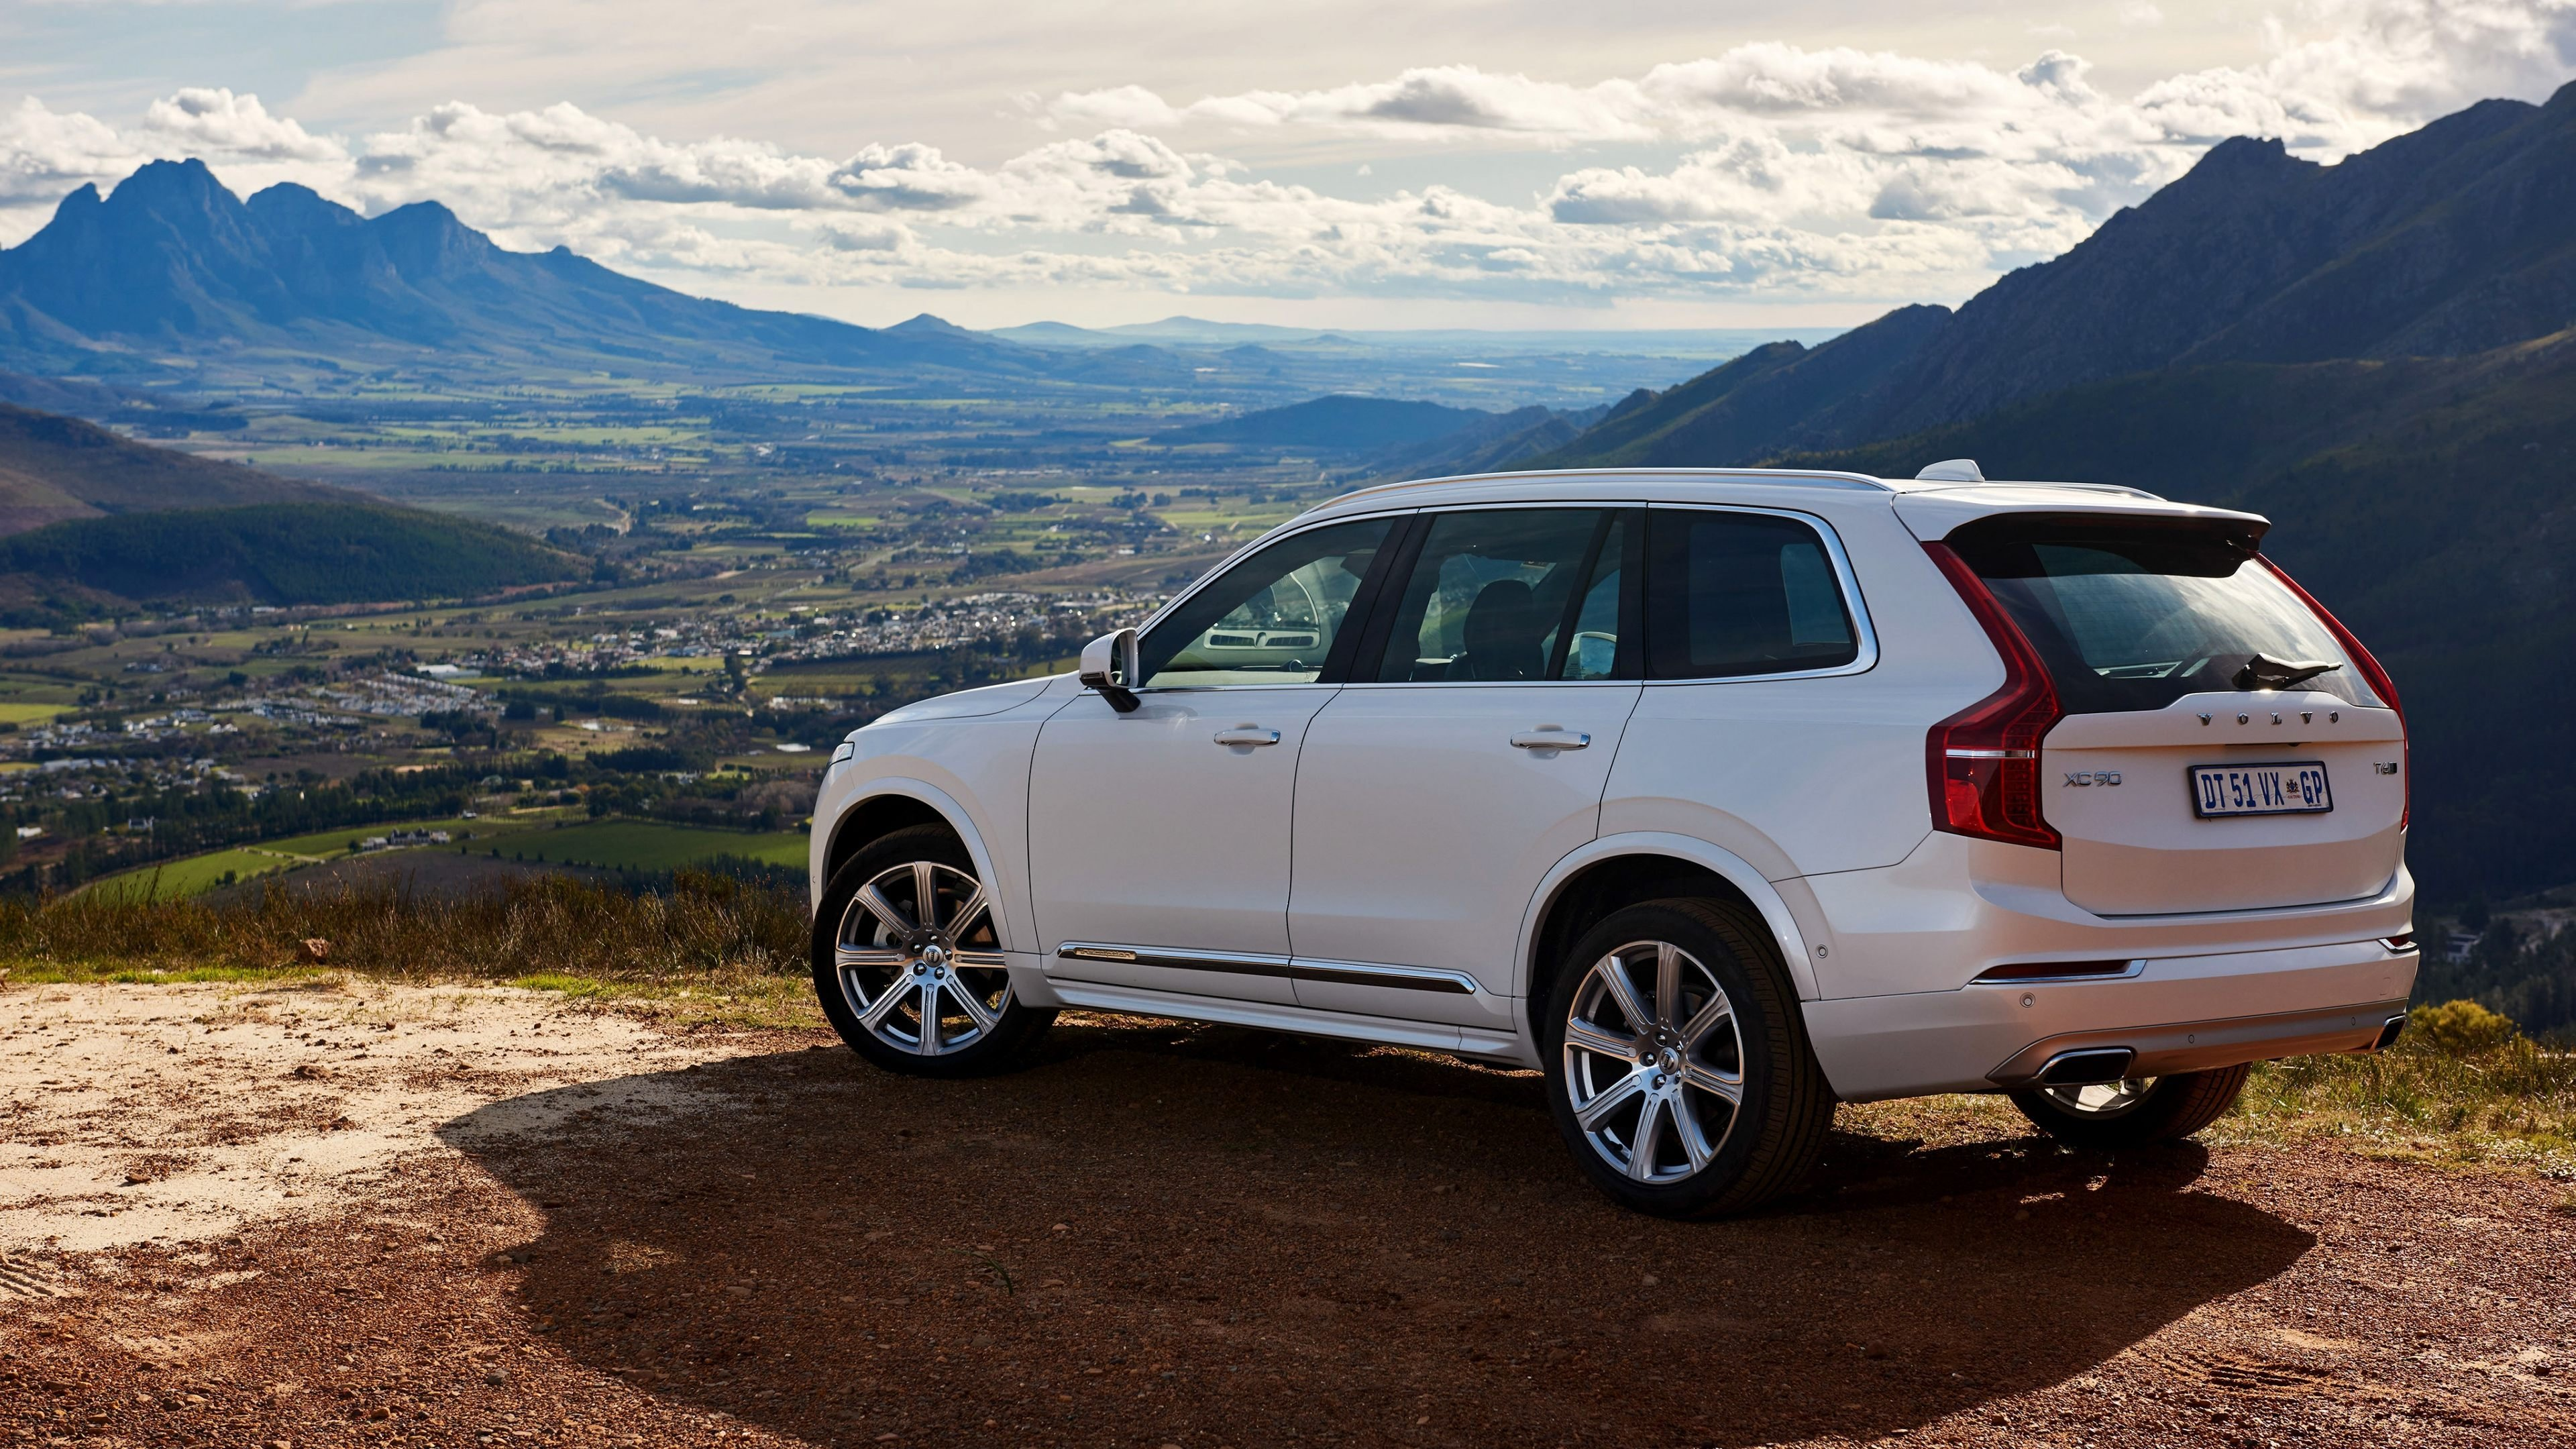 New Download Xc90 Volvo Car Wallpaper For Desktop Mobile On This Month